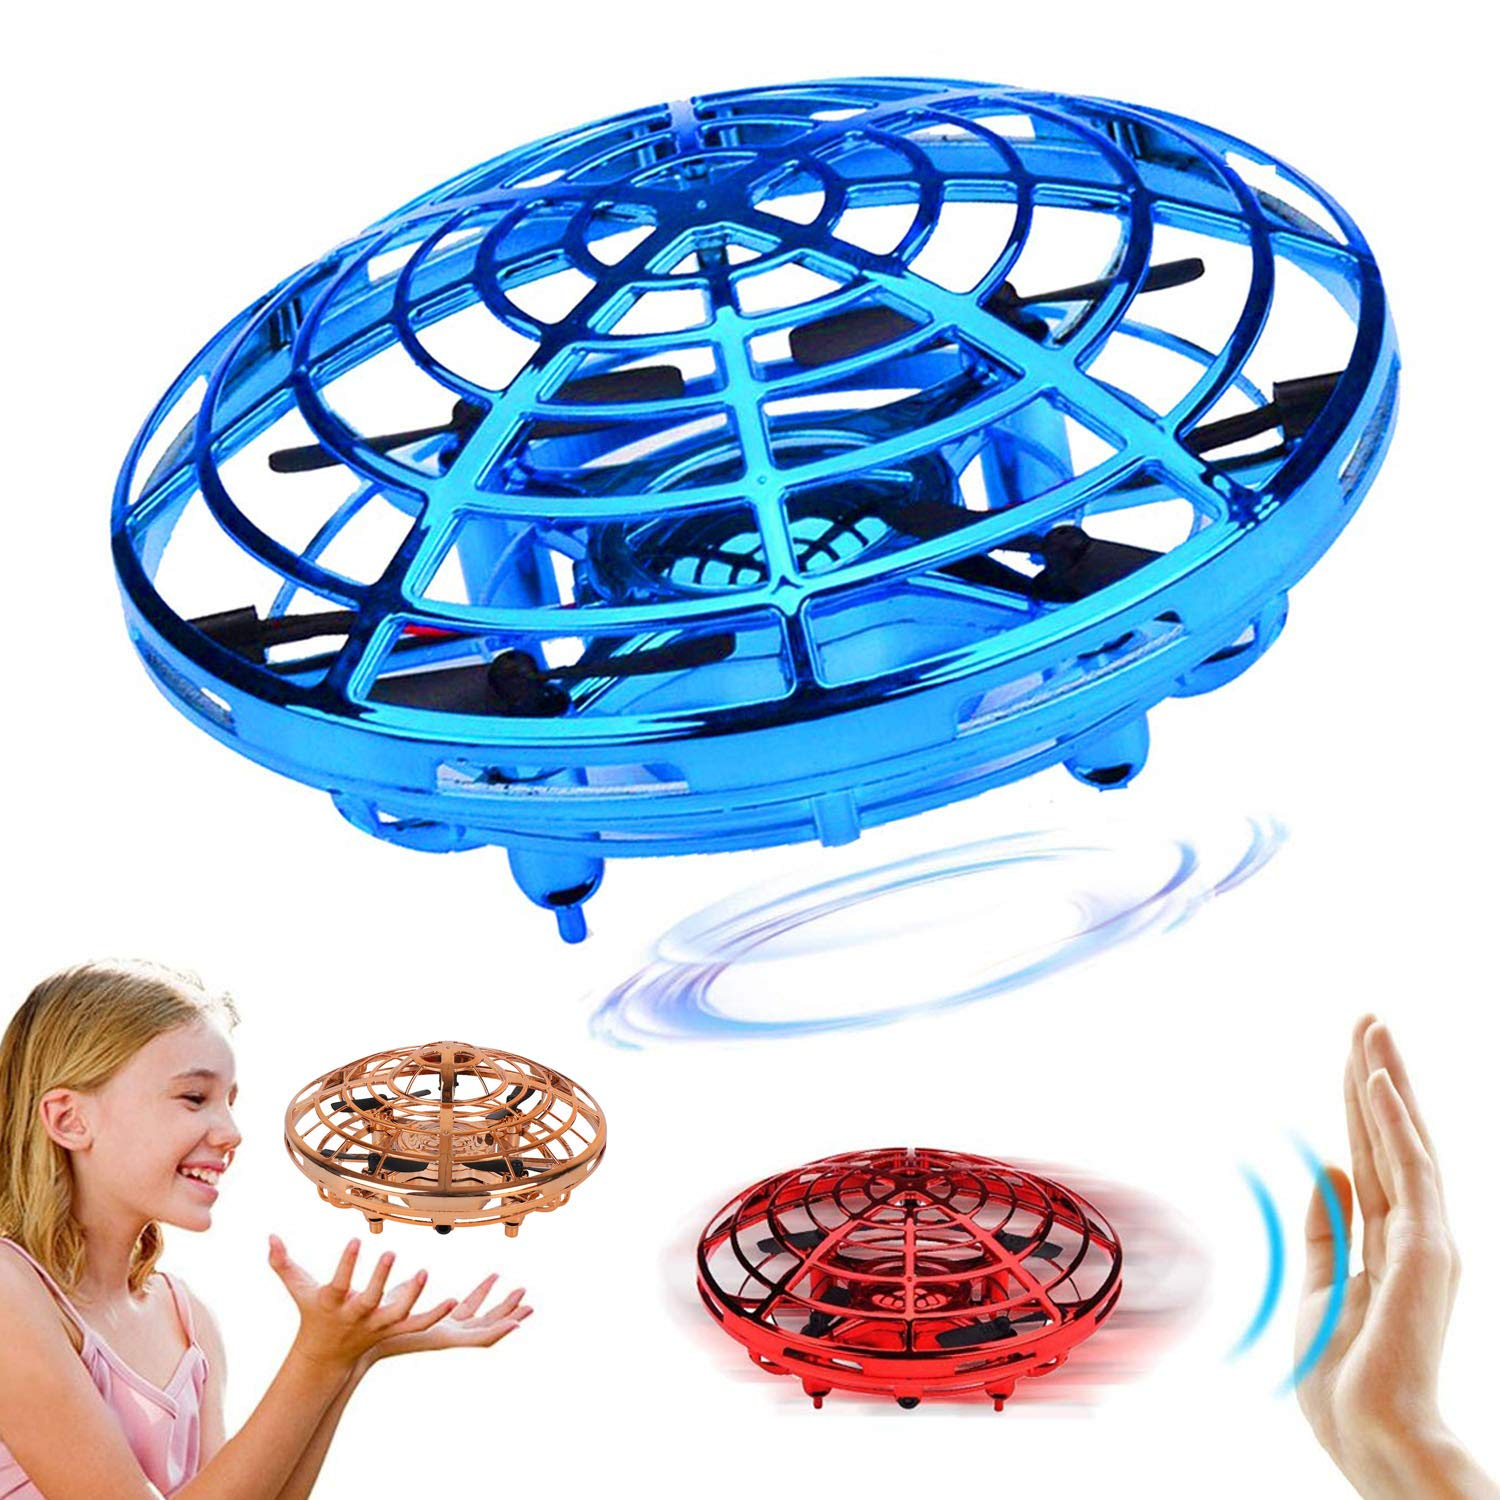 Tmango UFO Hand-Controlled Drones Toys, Infrared Induction Interactive Flying Toys with 360°Rotating & LED Lights Helicopter Gift for Kids, Boys & Girls (Blue)